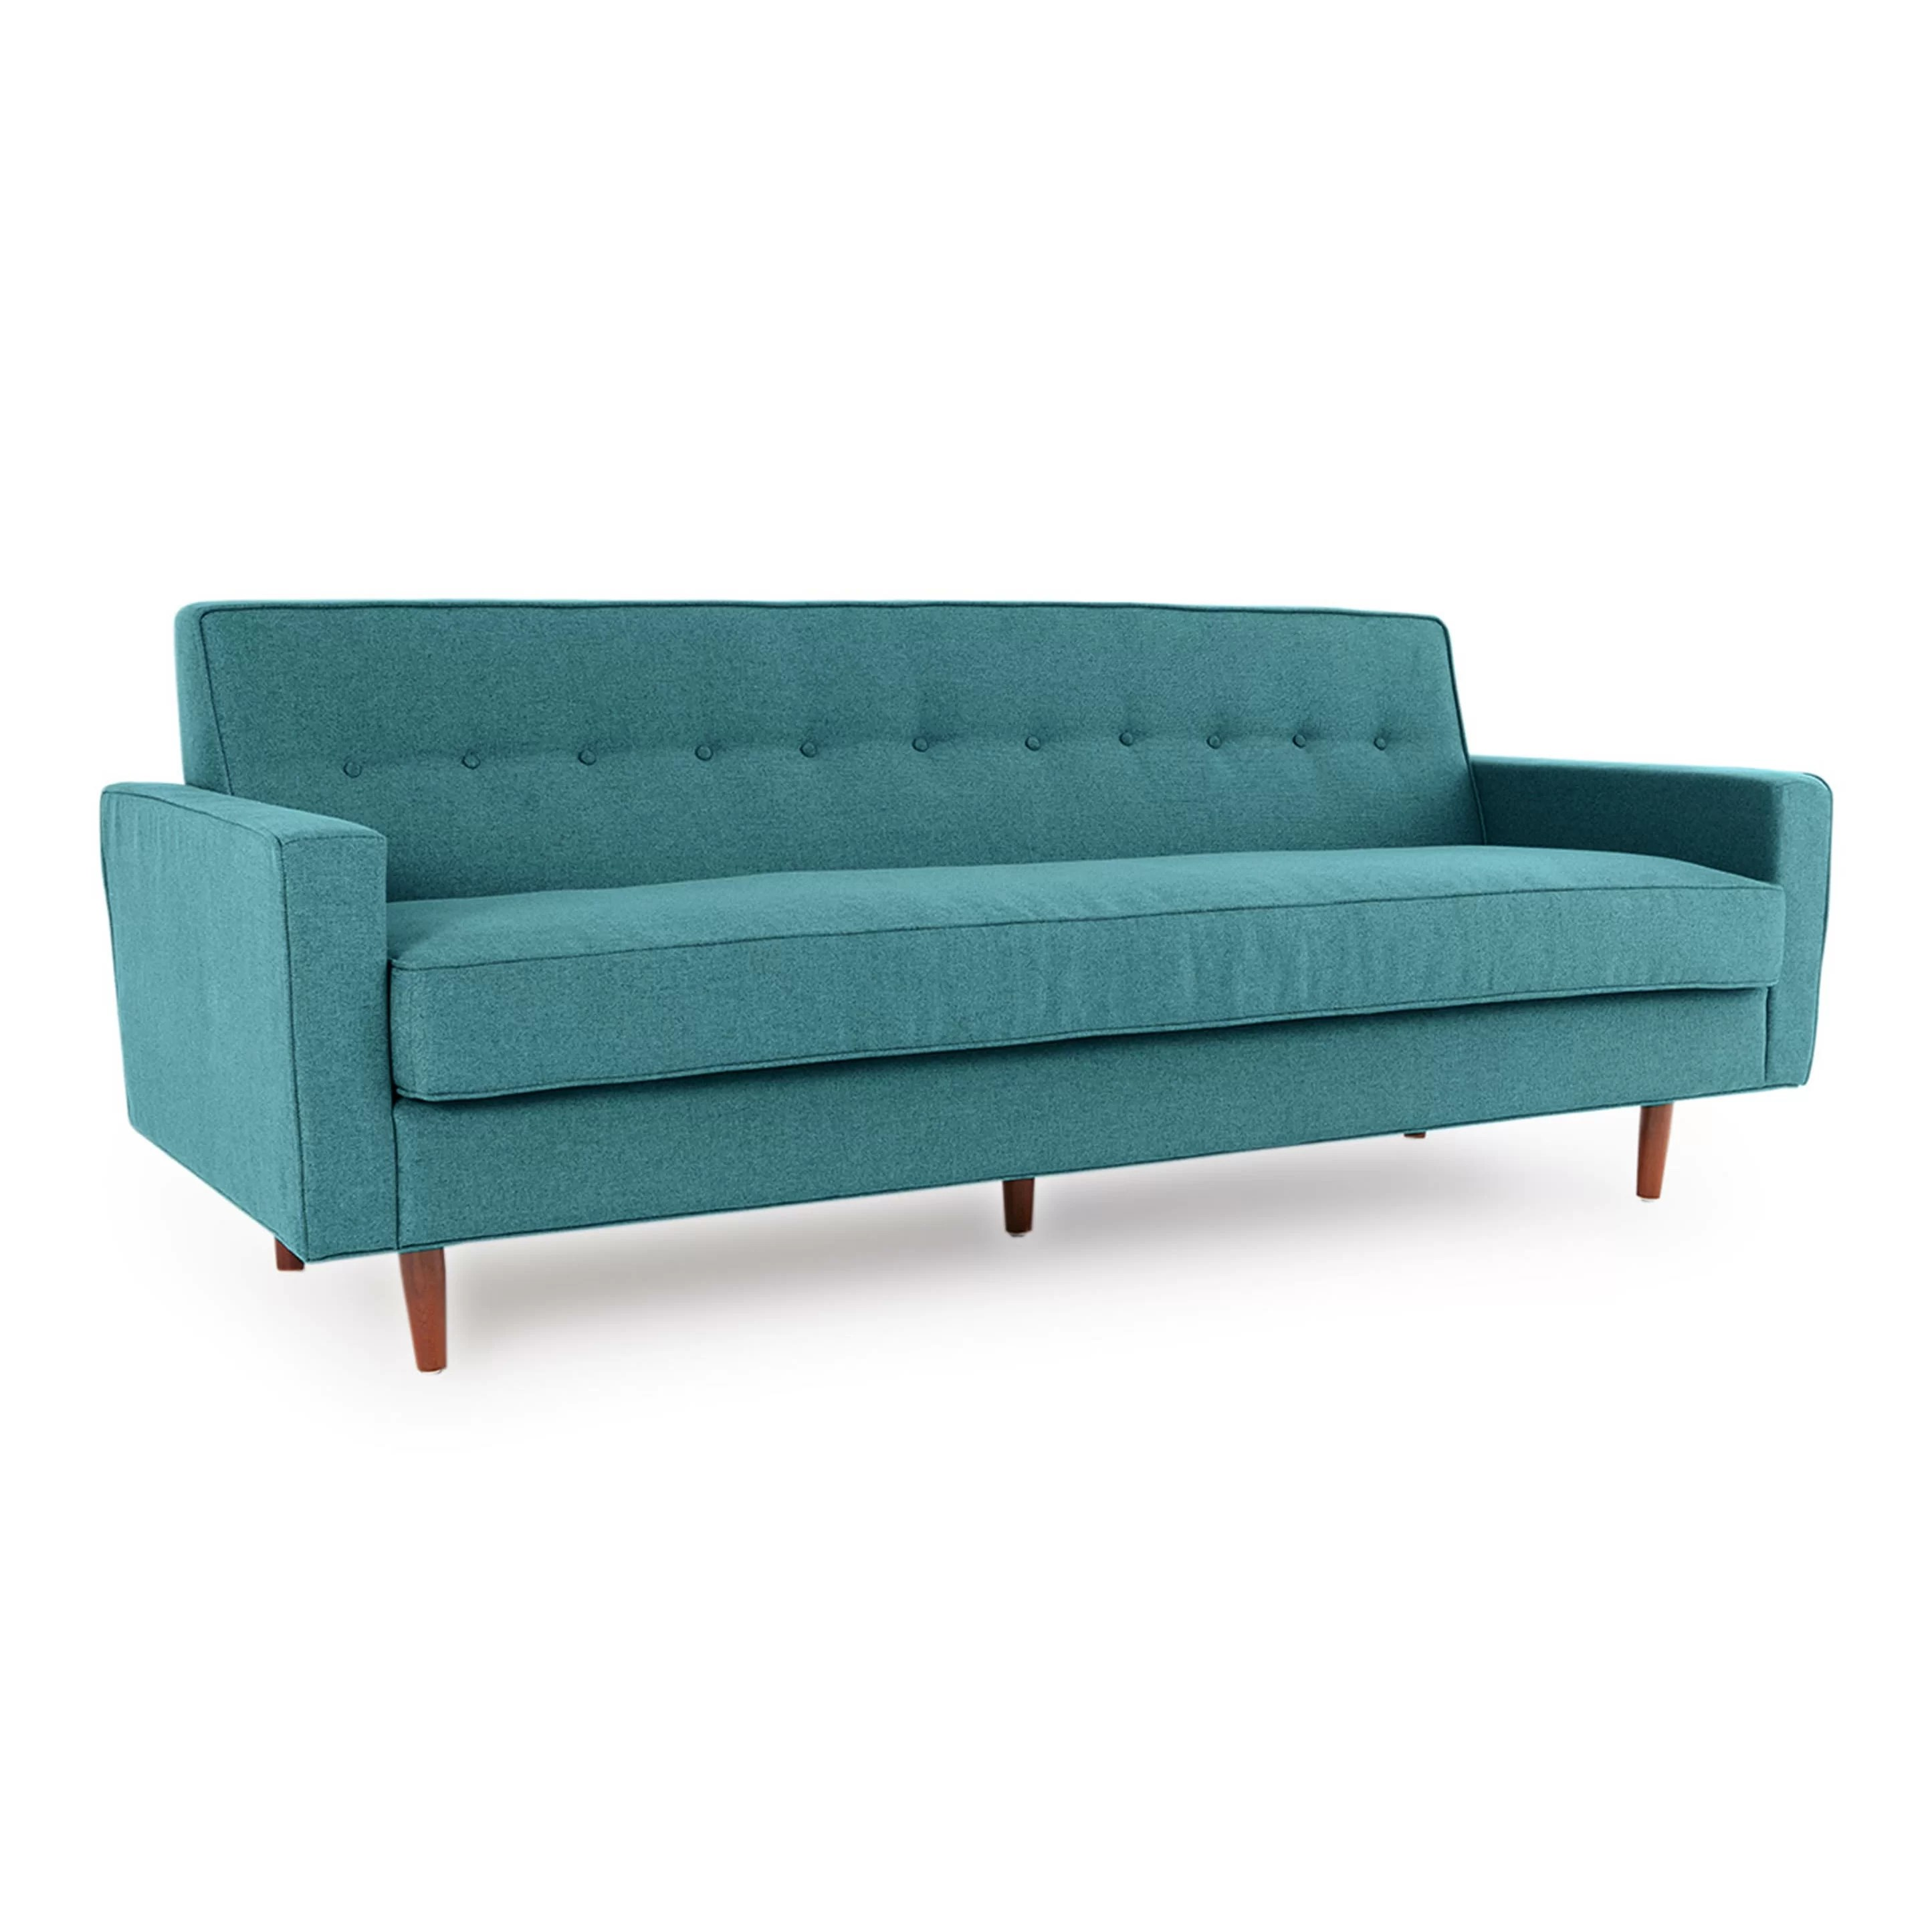 Couch Modern Kardiel Eleanor Mid Century Modern Sofa And Reviews Wayfair